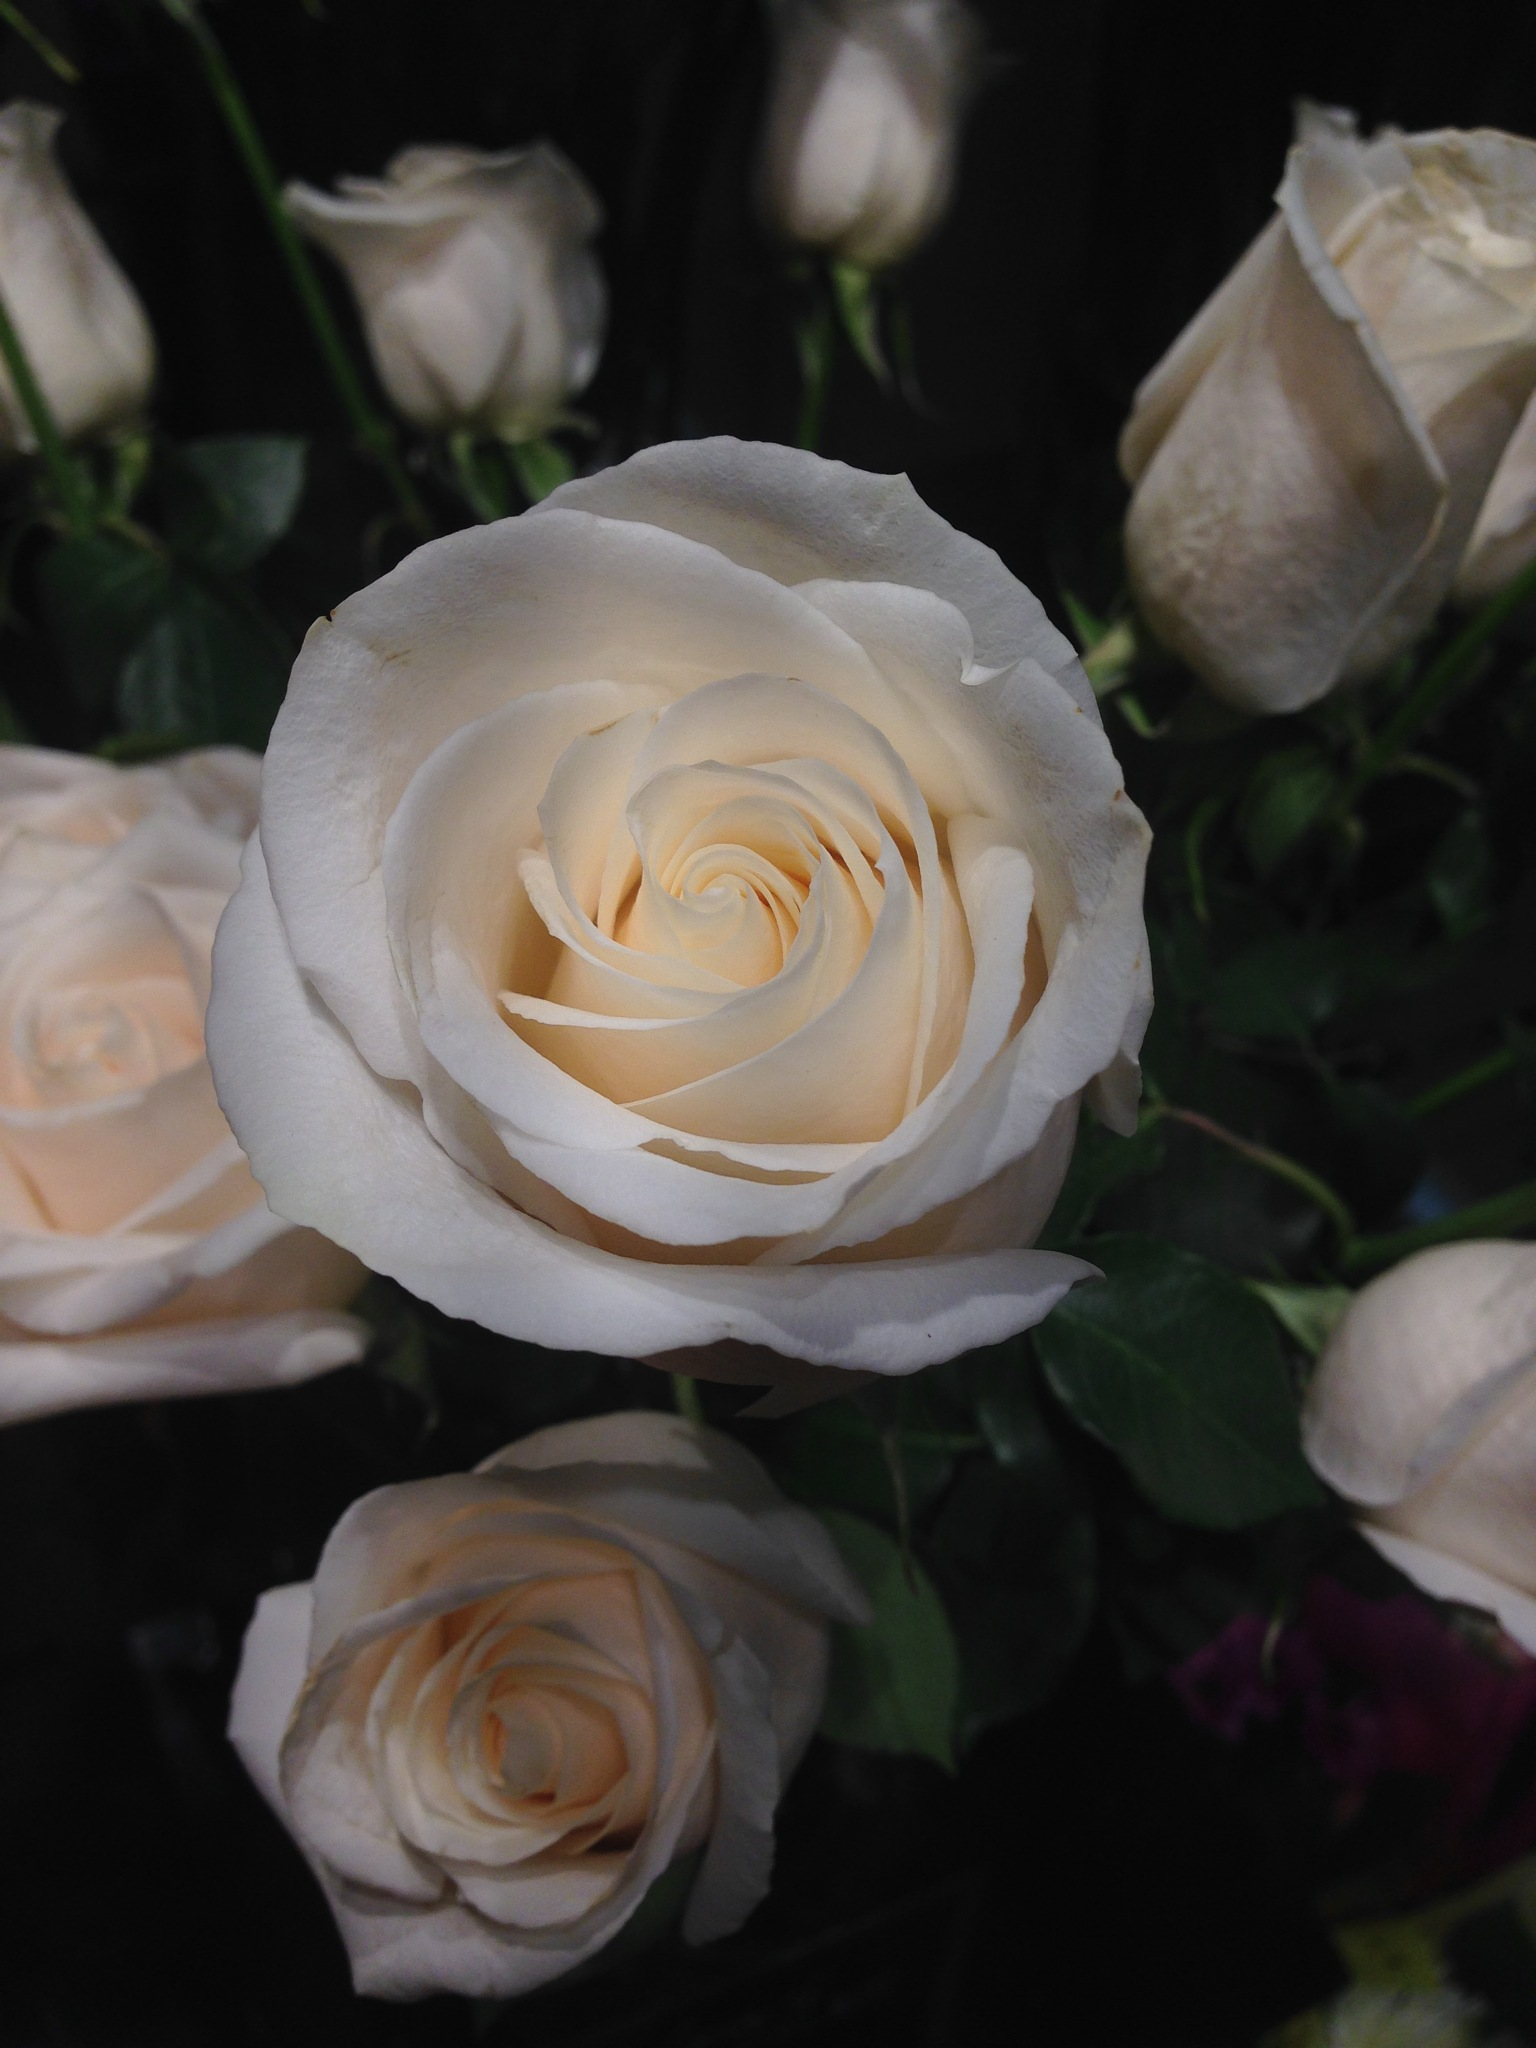 White roses by Peter O Merz